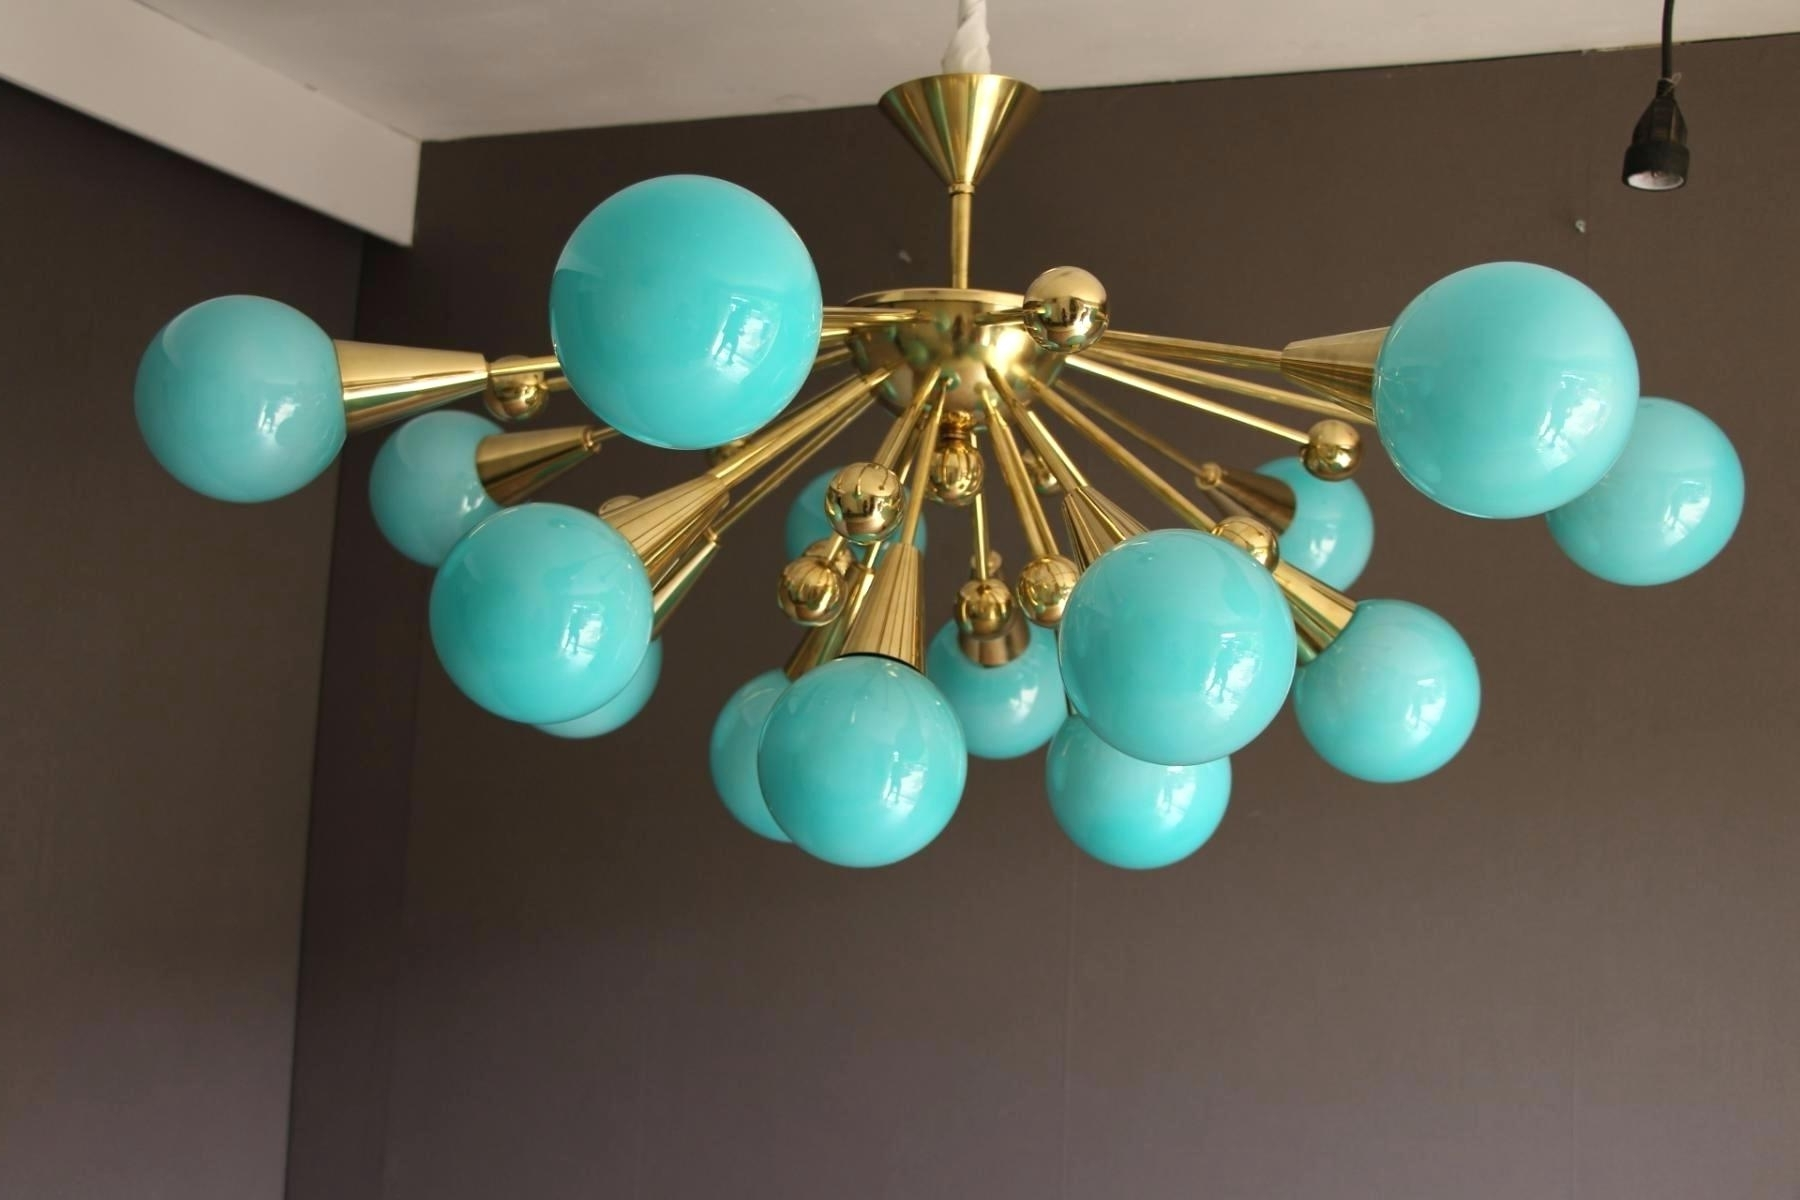 Preferred Hand Blown Glass Lamp Shades Six Arms Turquoise With Gold Flecks Regarding Turquoise Blown Glass Chandeliers (View 8 of 20)